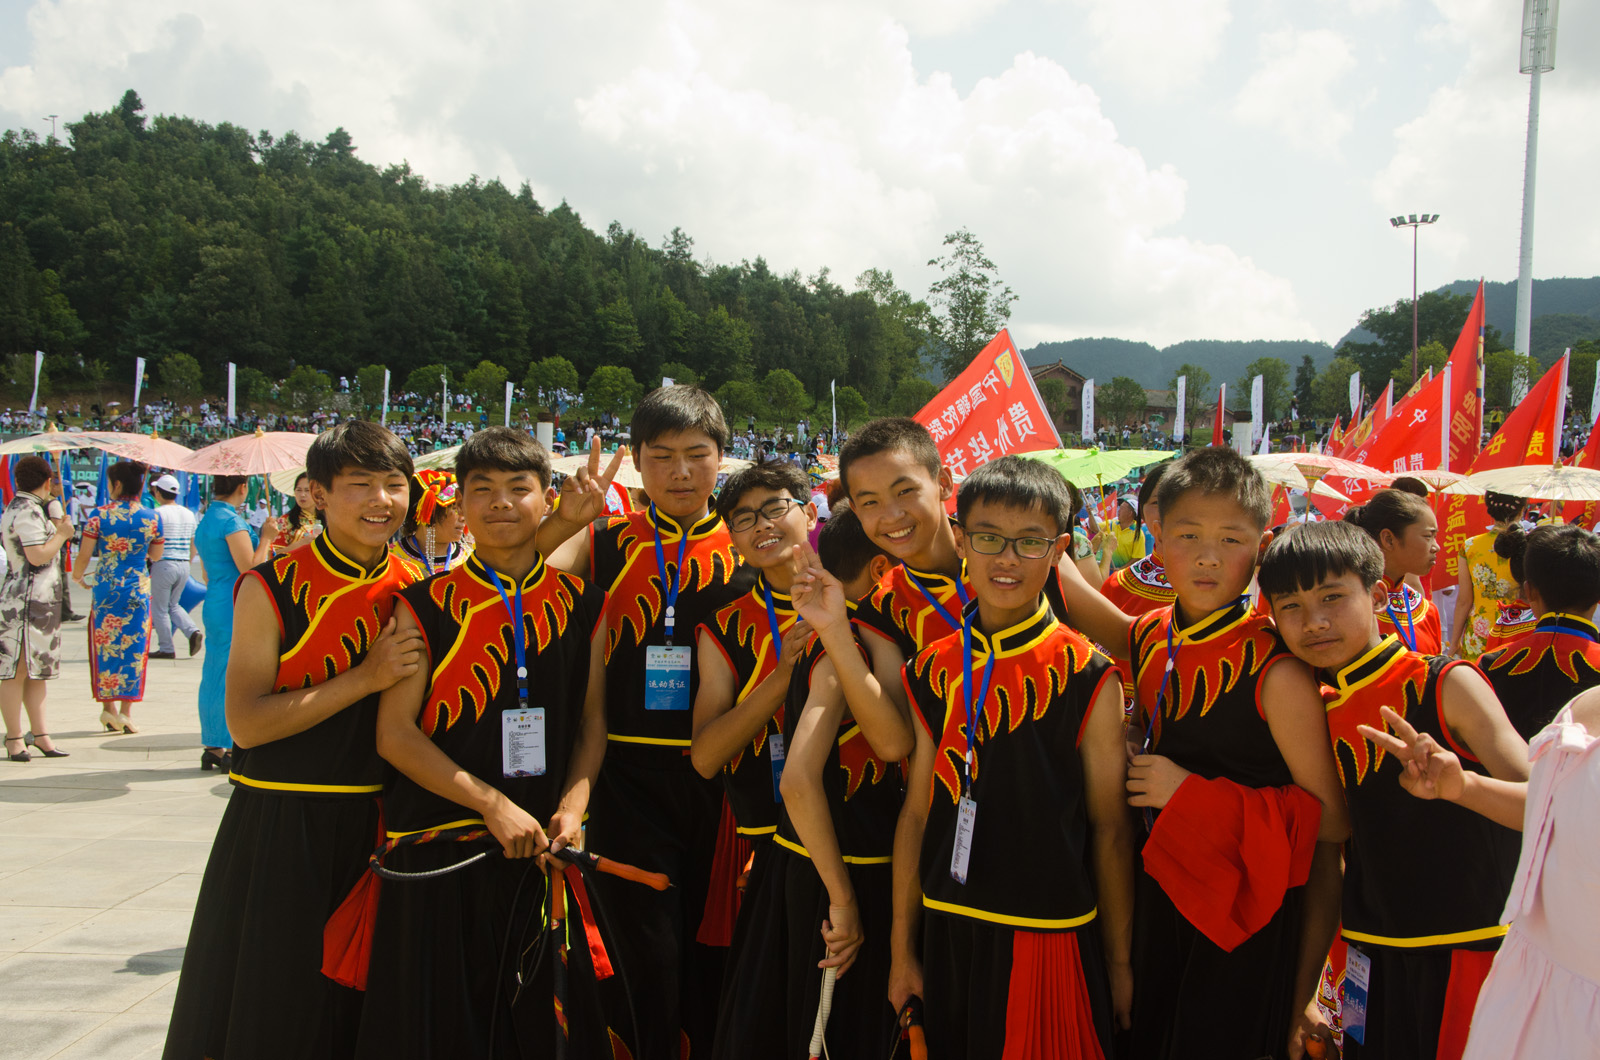 Shuicheng-Liupanshui International Whip an chinese spinning top Competition – July 2017